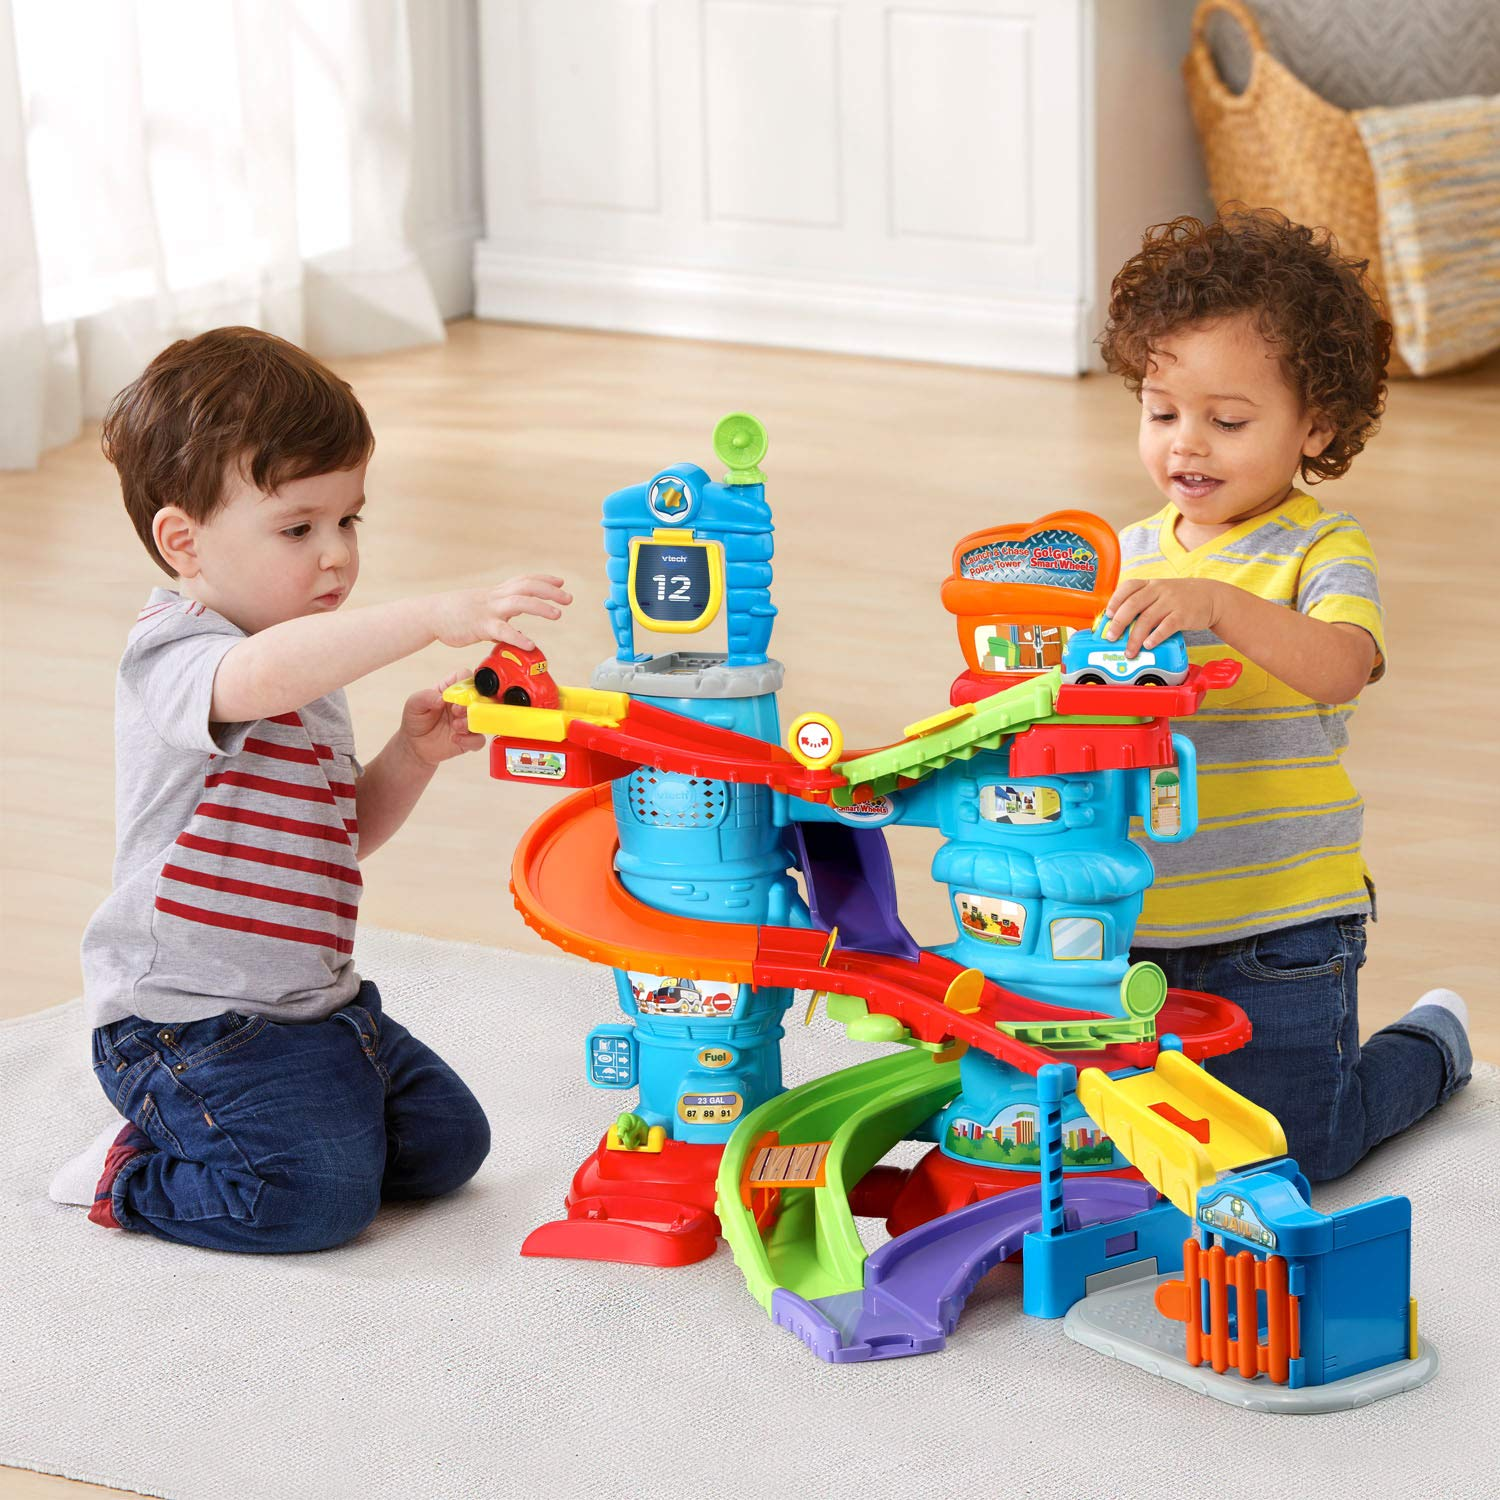 VTech Go! Go! Smart Wheels Launch and Chase Police Tower by VTech (Image #5)